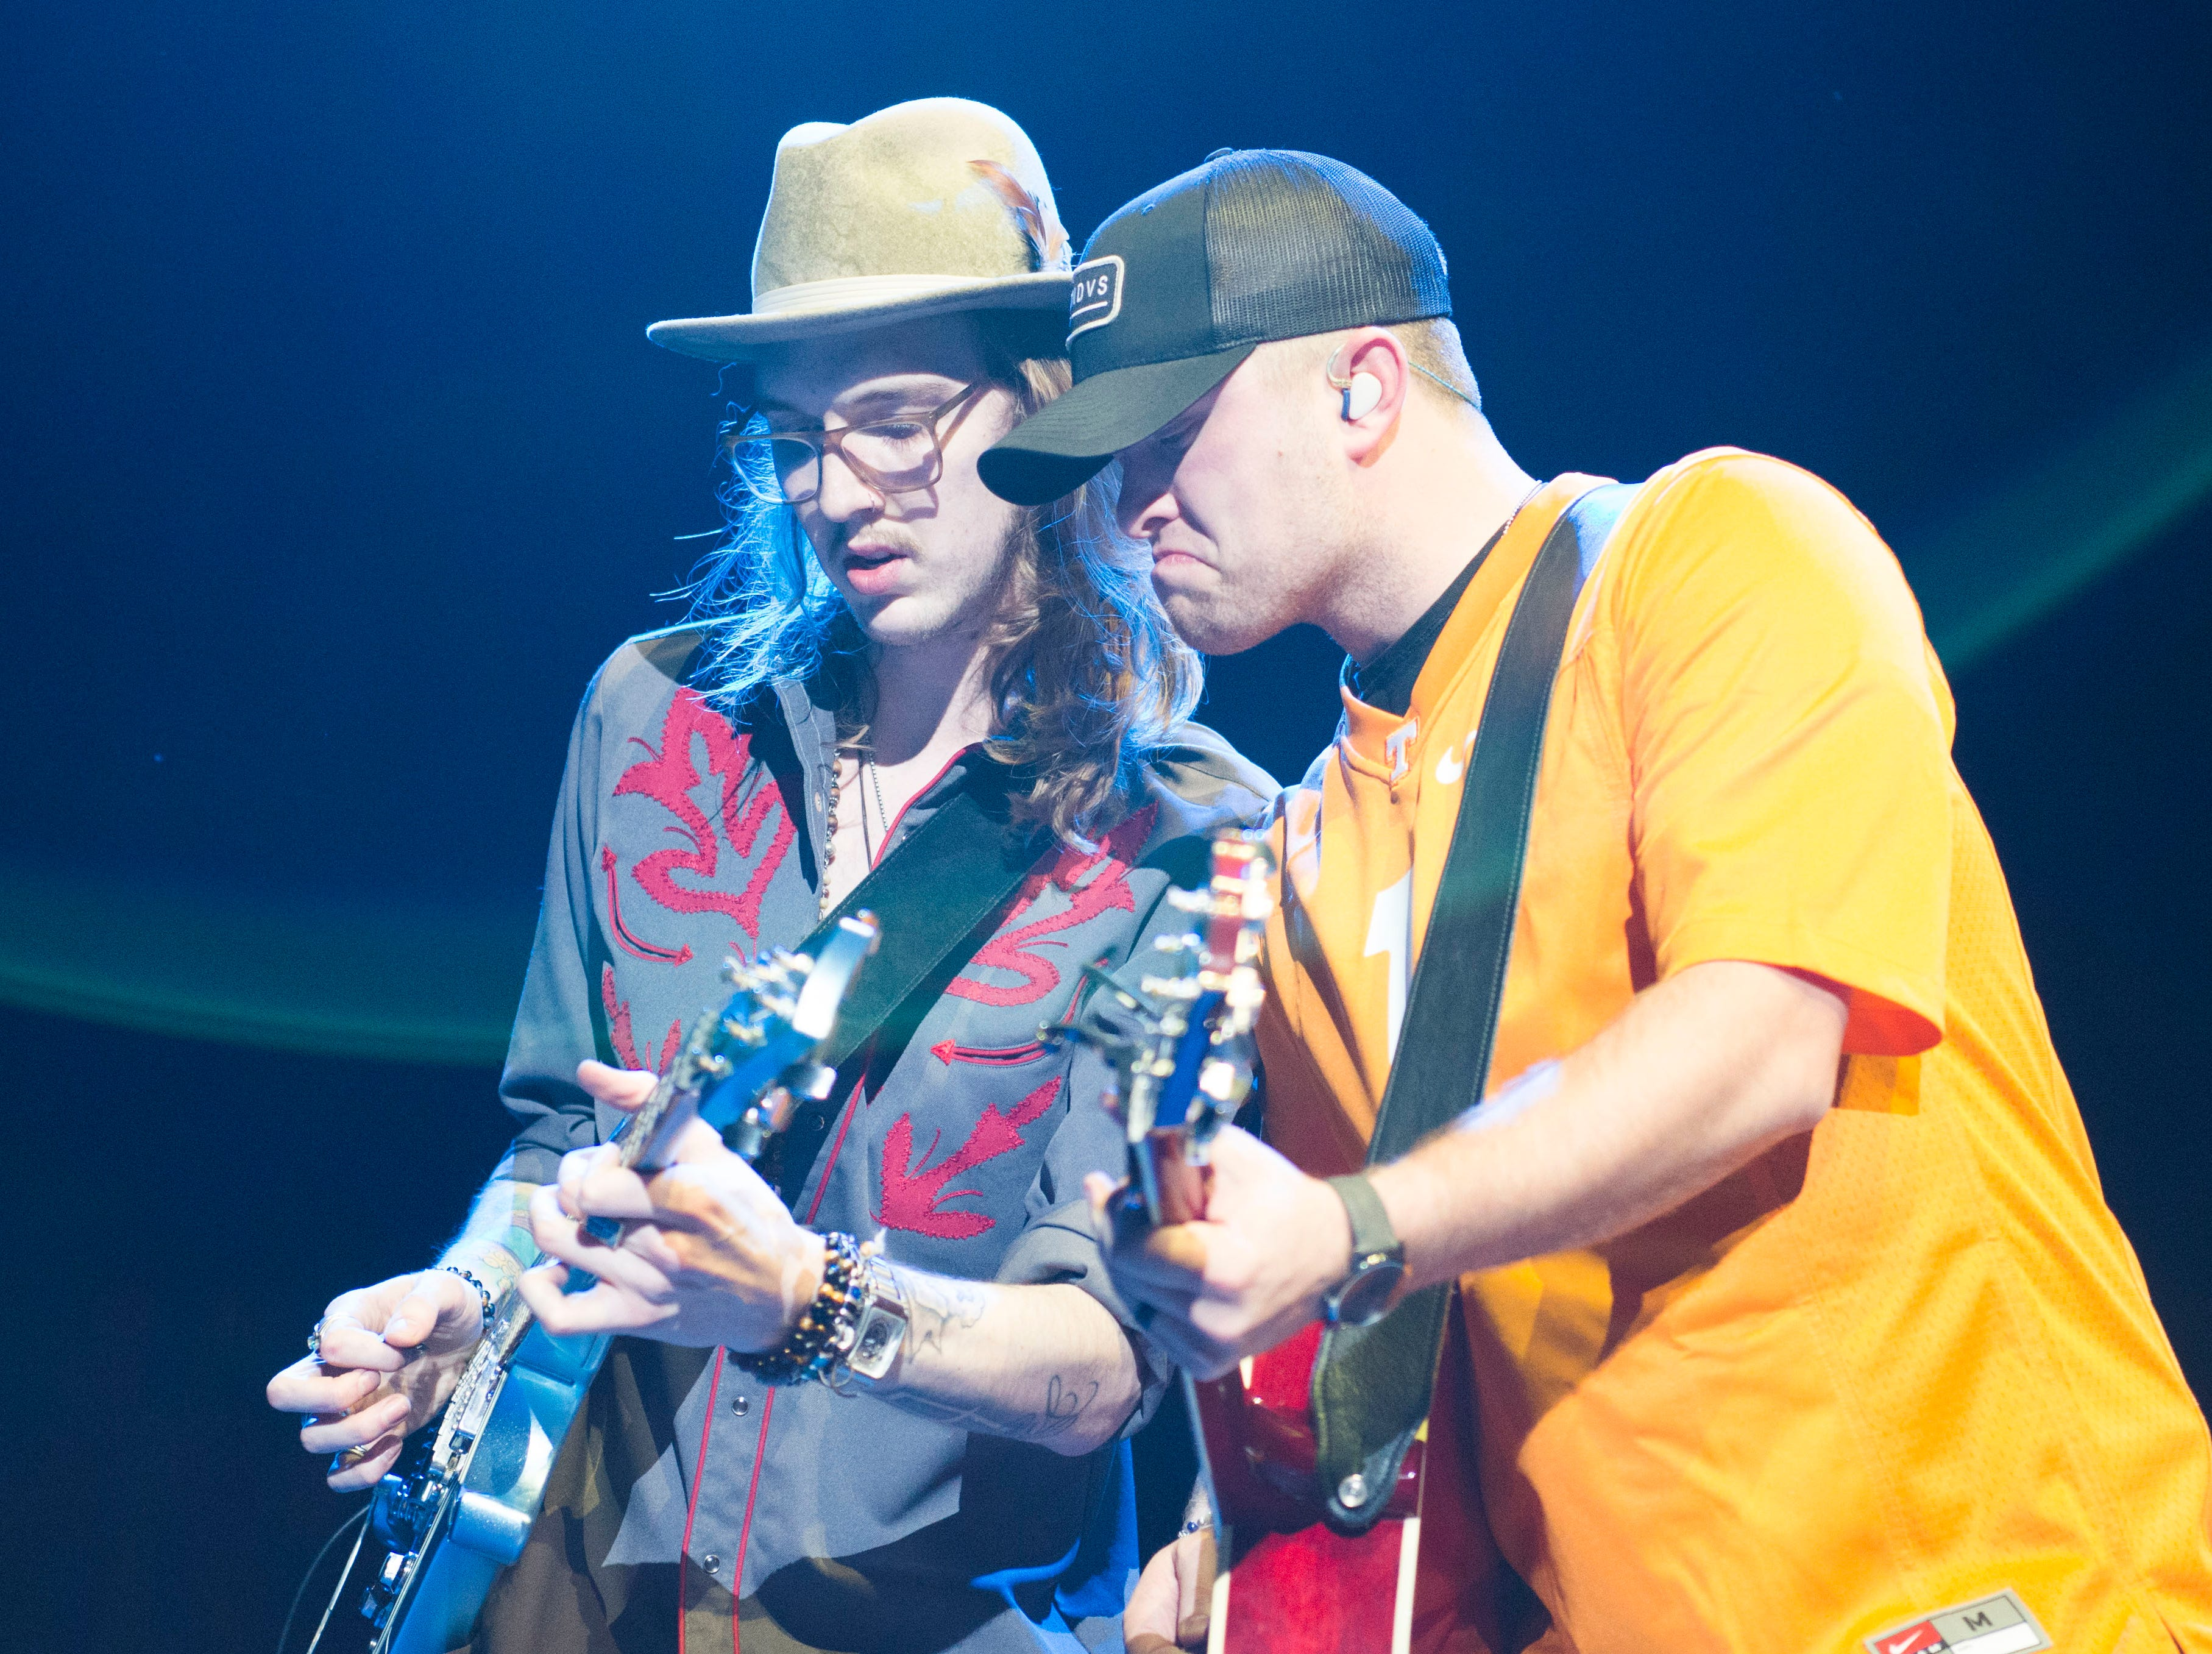 A guitarist and Jordan Walker of Walker McGuire open for Luke Combs in Thompson-Boling Arena in Knoxville Friday, Feb. 15, 2019.